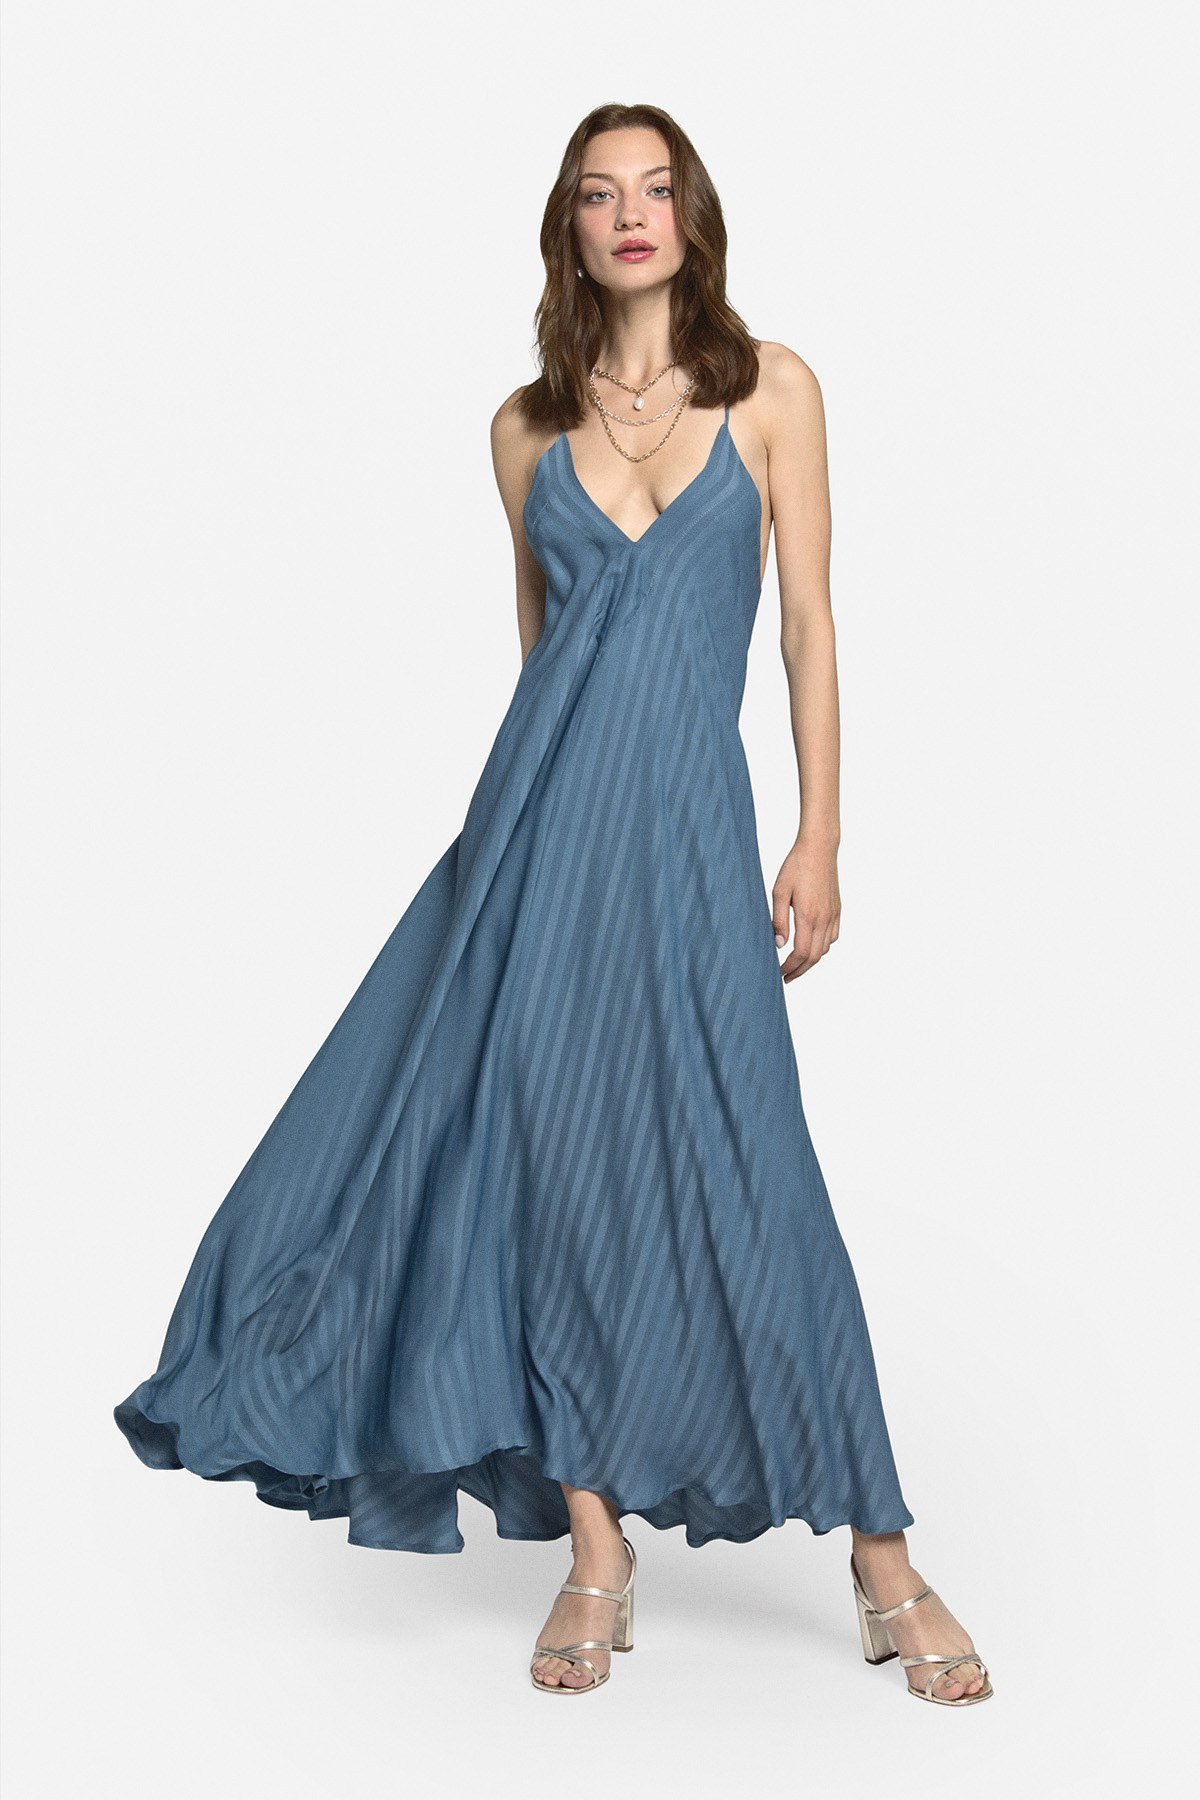 Fluid and flared long dress